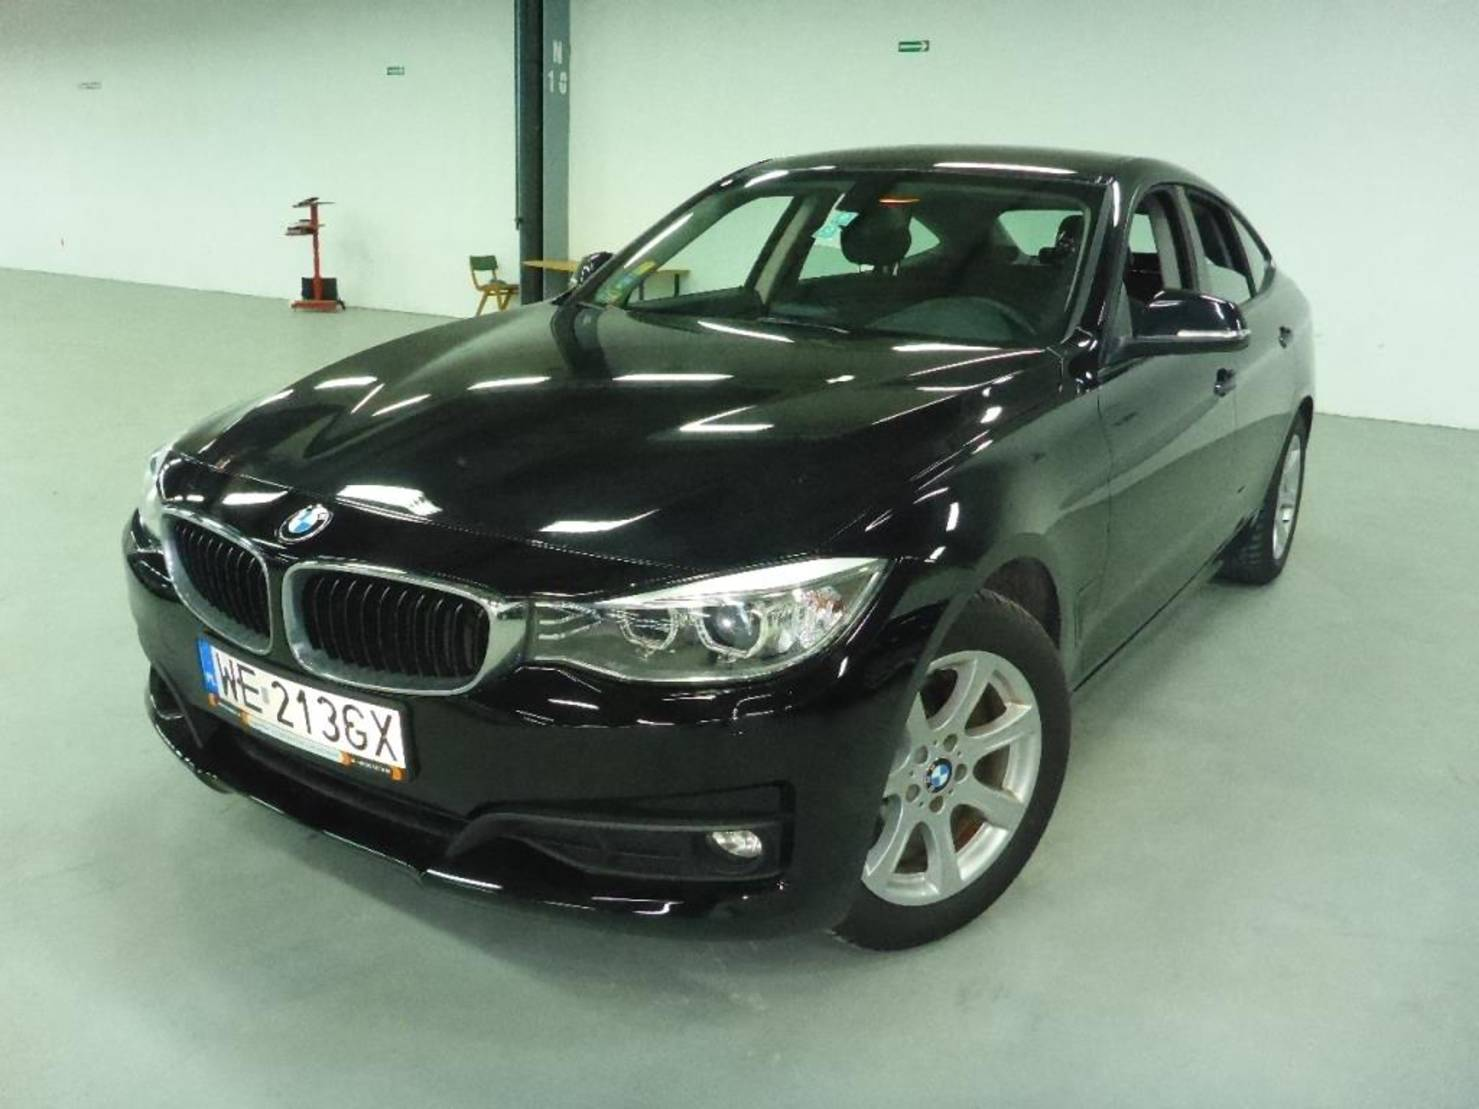 BMW 3 Serie 320d xDrive GT 184KM Salon PL detail1